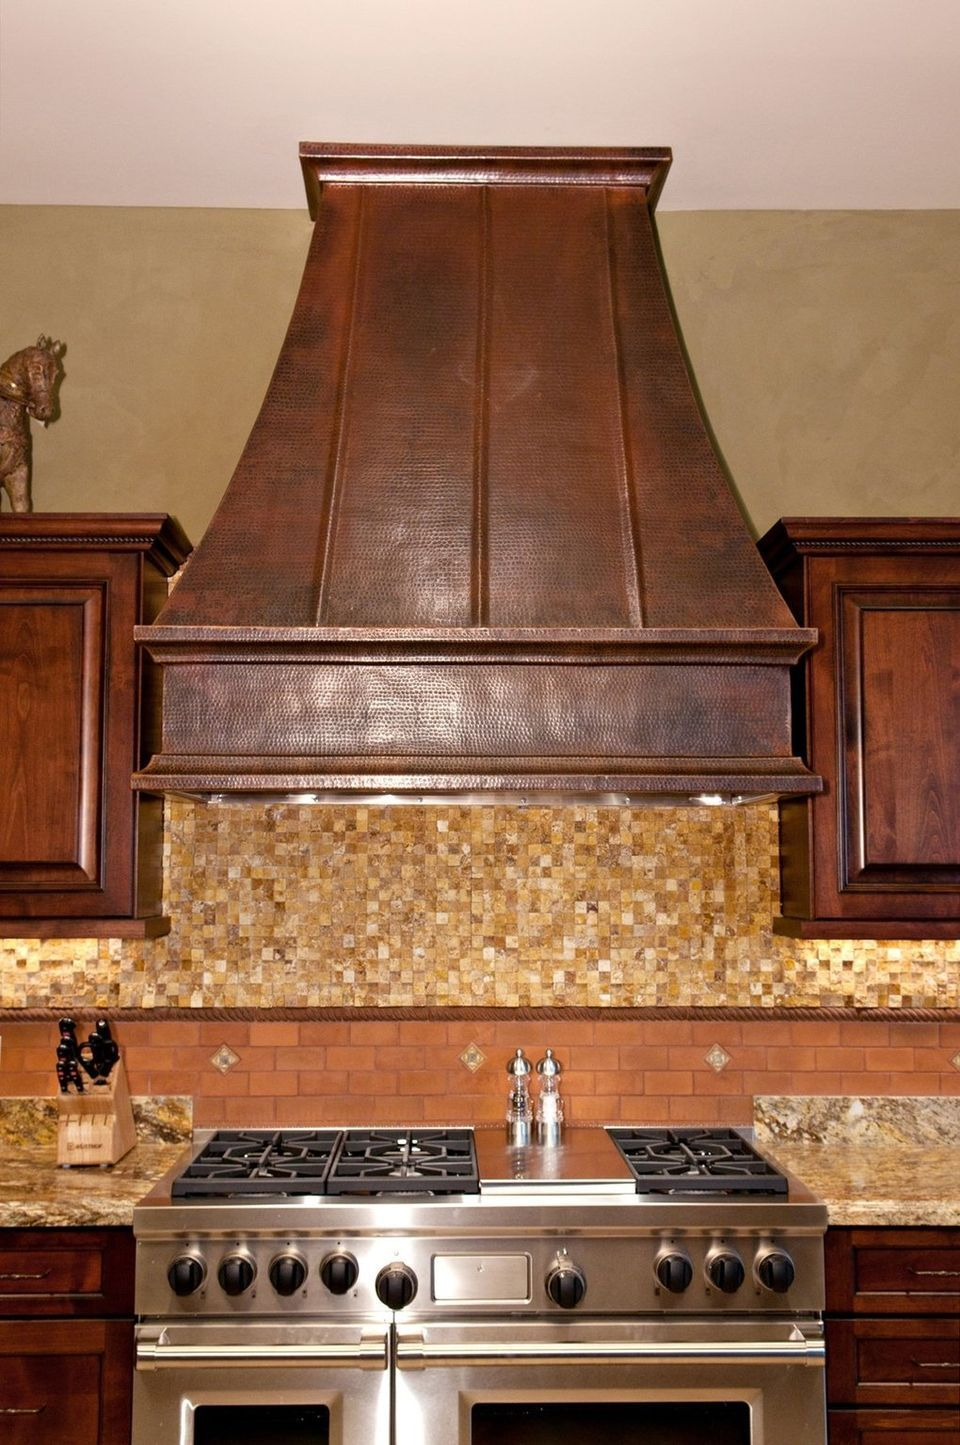 Kitchen Range Hood Design Ideas decorative glass kitchen hood design pictures remodel decor and image kitchen range hood design ideas Copper Oven Hood Copper Range Vent Hoodscopper Stove Hoodscopper Exhaust Hoodscopper Kitchen Pinterest Range Vent Exhaust Kitchen Range Hood Design Ideas